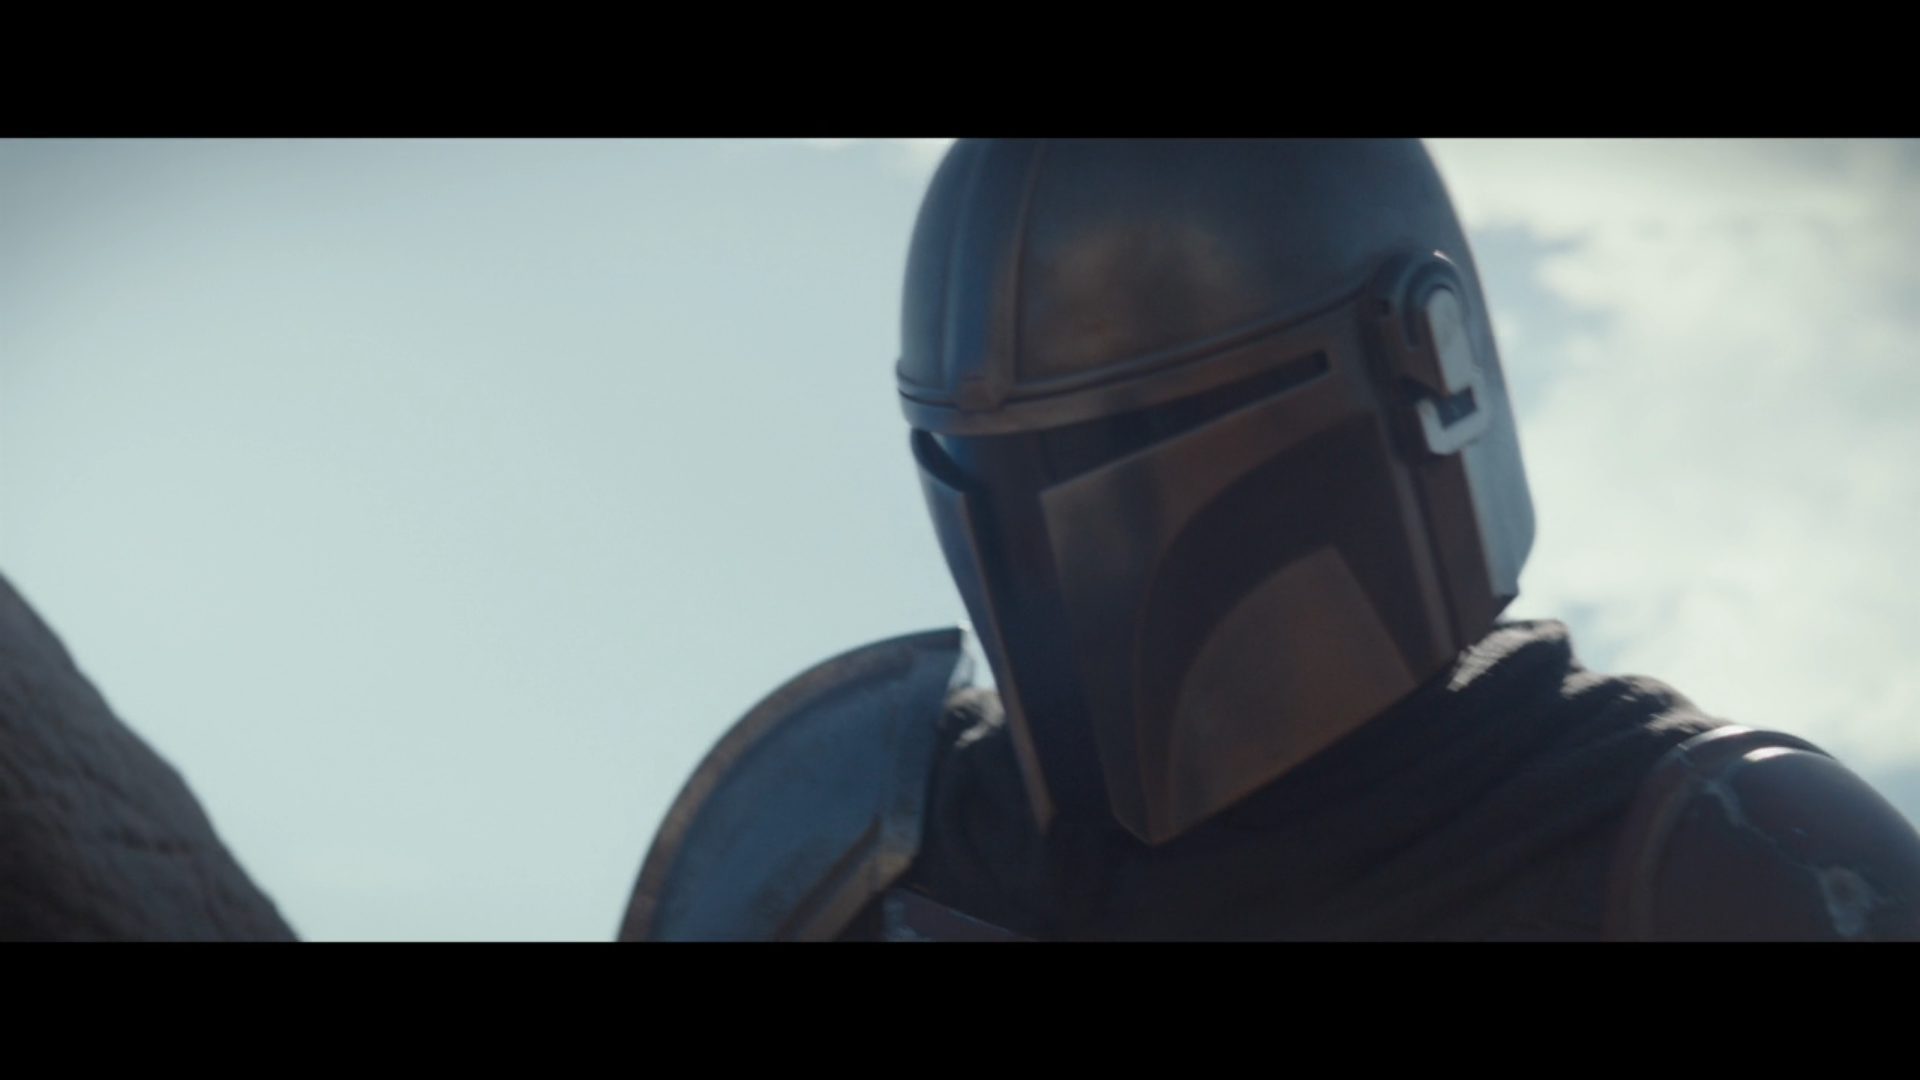 We watched The Mandalorian and Star Wars all in HDR10 and